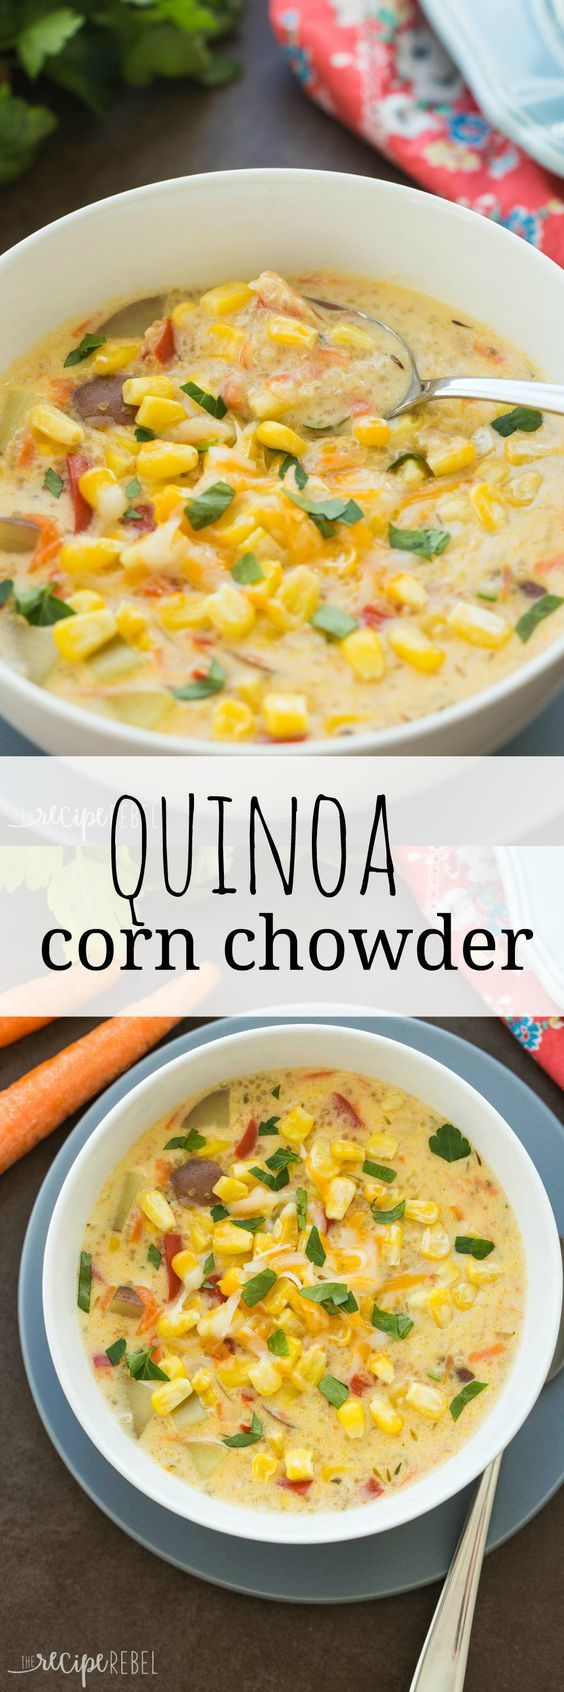 Easy One Pot Quinoa Corn Chowder Recipe